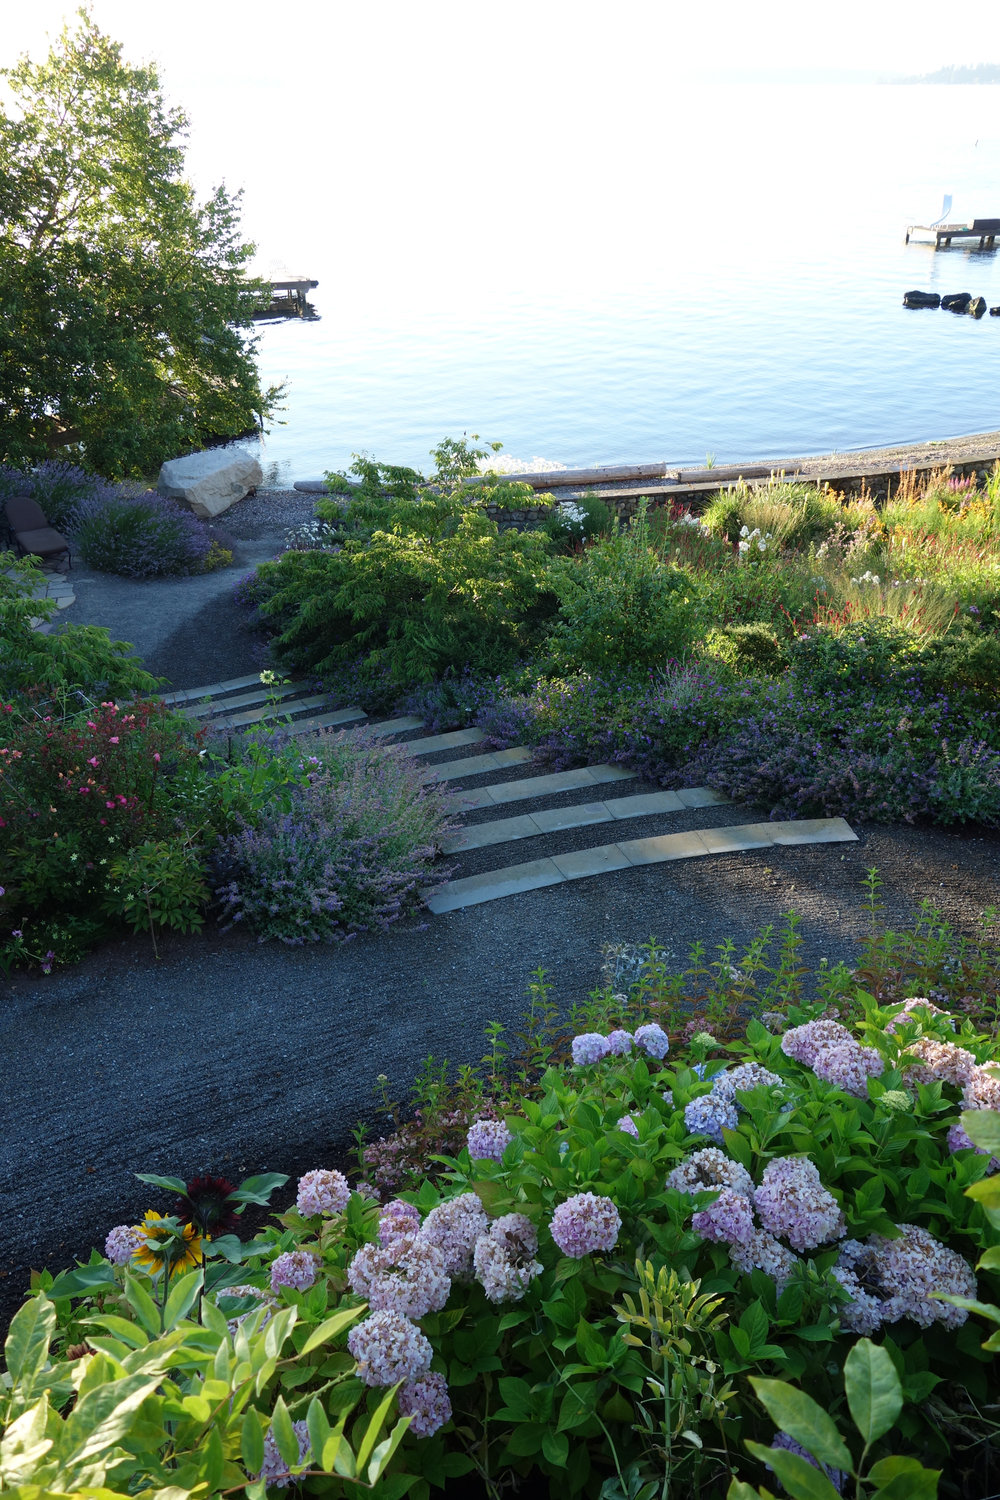 Informal steps toward beach amongst meadow planting